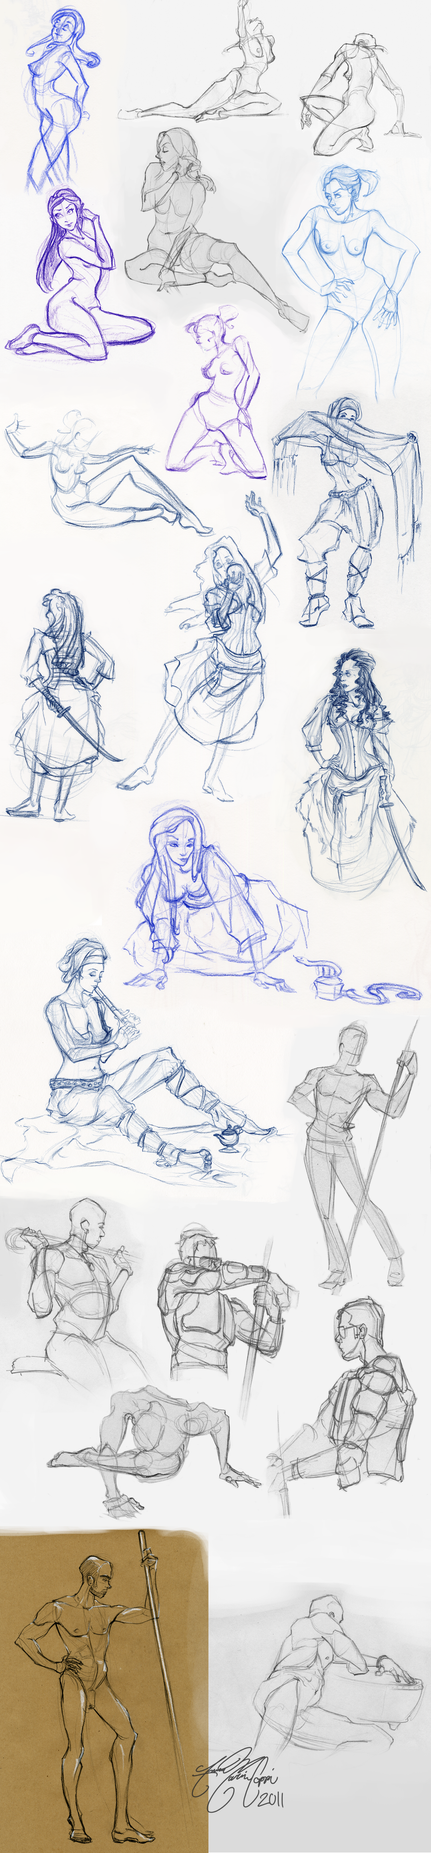 2011 Life Drawings by linkfreak131